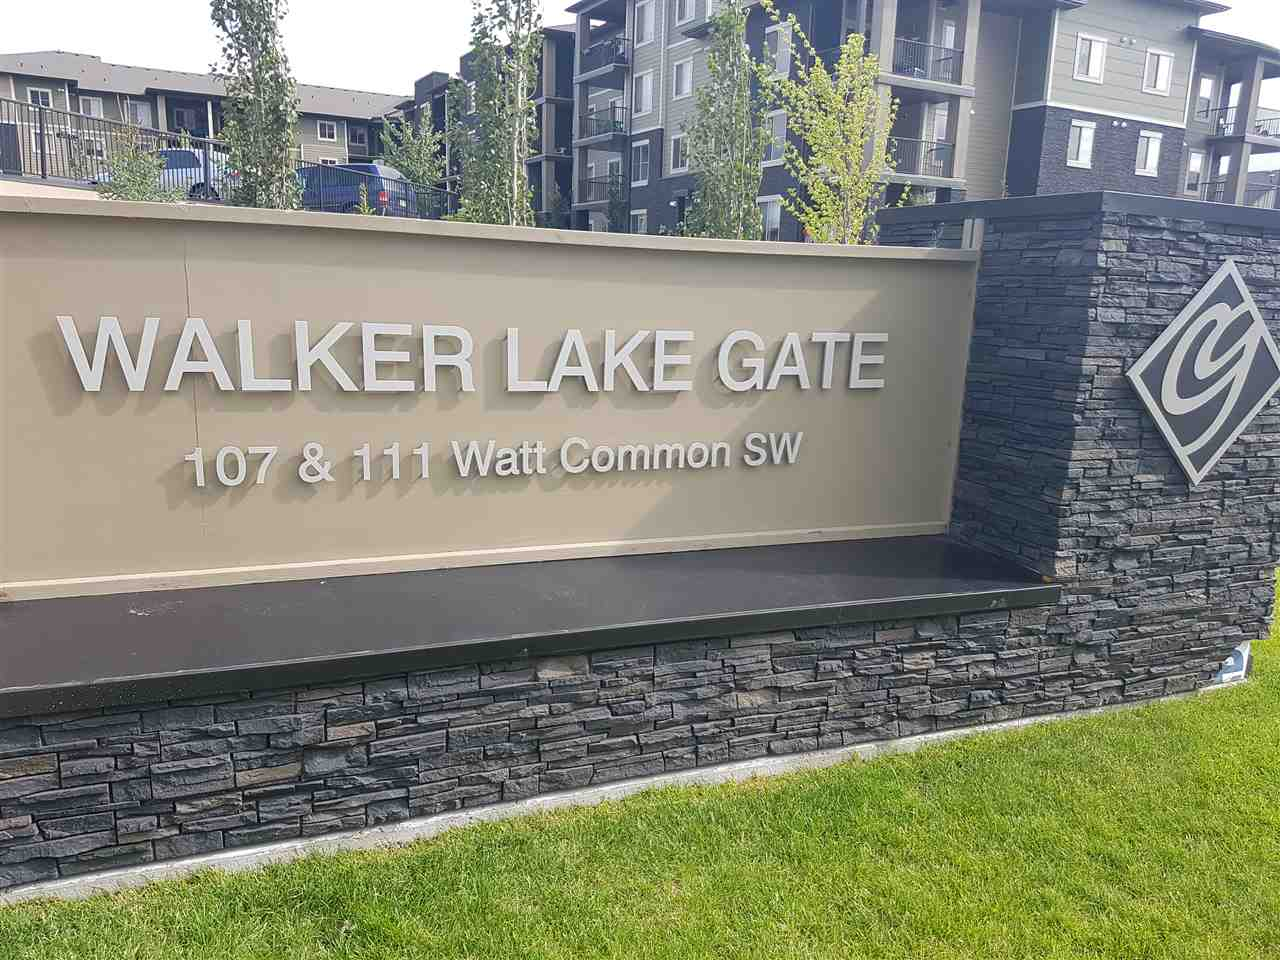 Welcome to Walker Lake Gate. Easy access to amenities including shopping, schools, transportation, recreation and offers easy access to Ellerslie Road, Calgary Trail, Gateway Boulevard, Anthony Henday and the airport.  Spacious 2 bedroom main floor condo features upgraded cabinets, back splash, front end load washer/dryer, granite counter top, and appliances in kitchen. Great location for investment property or first time buyers!